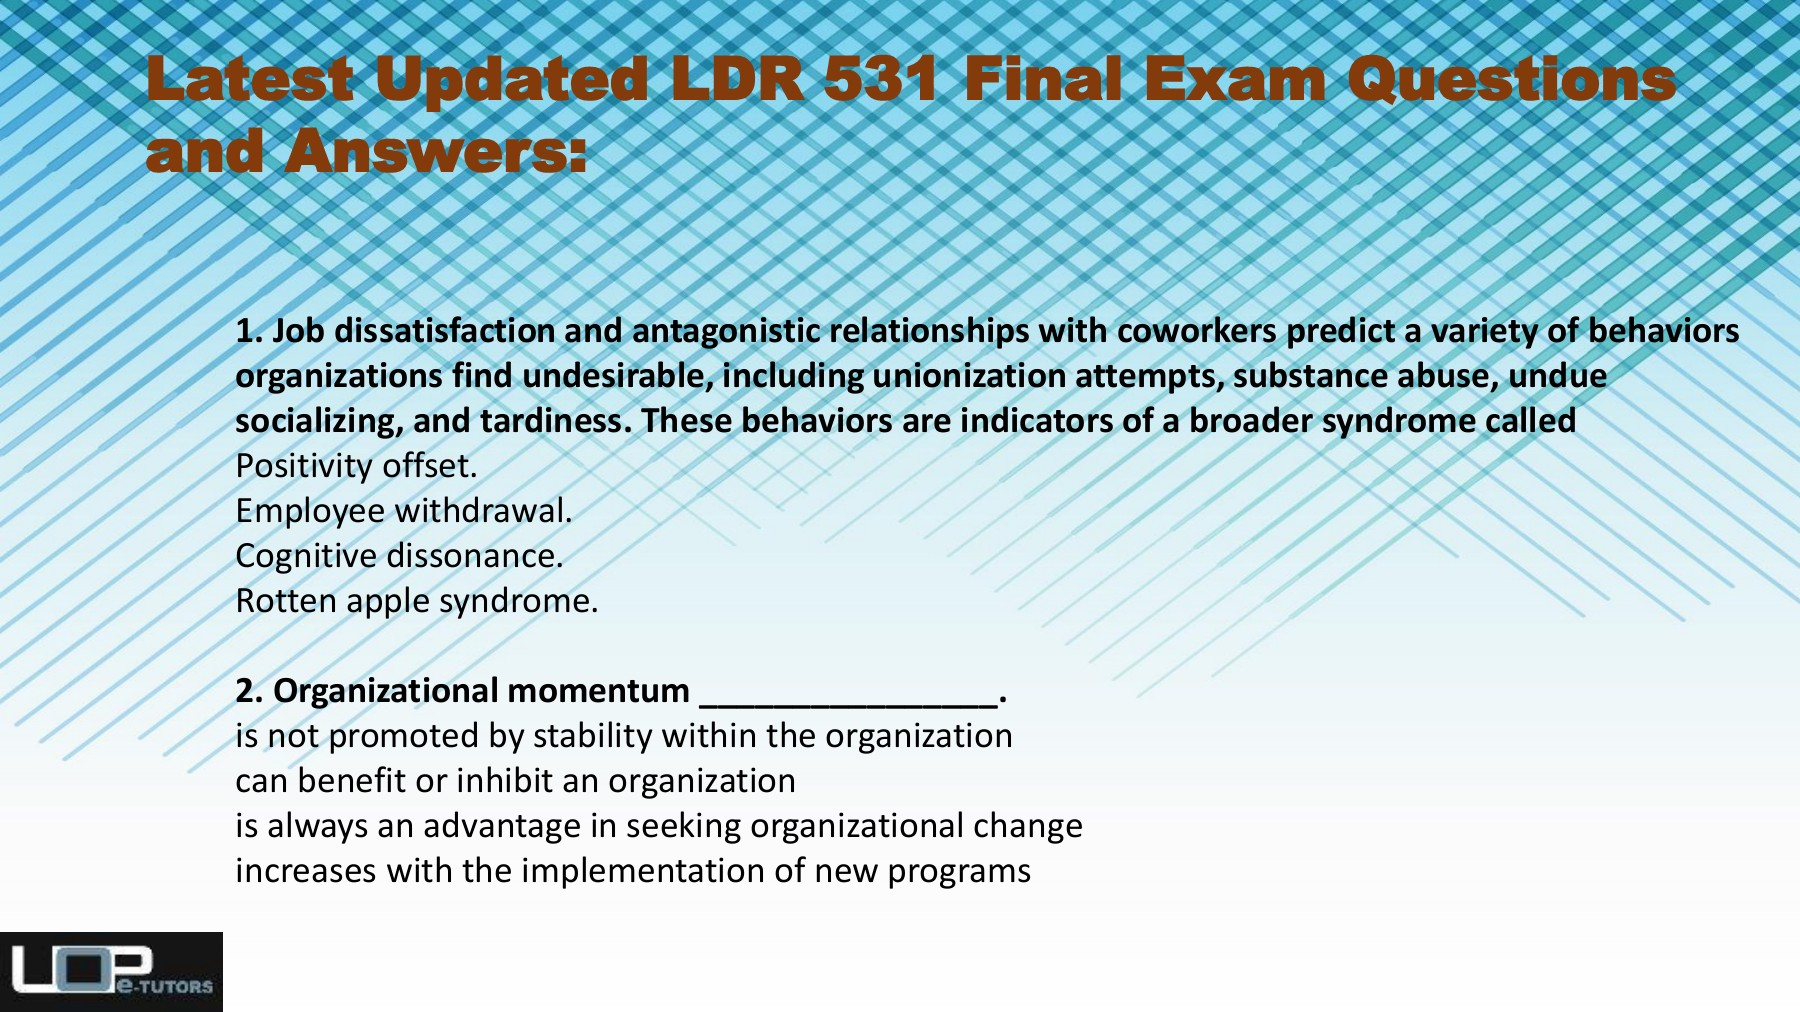 LDR 531 Final Exam Questions Pdf Download at Uop E Tutors Pages 1